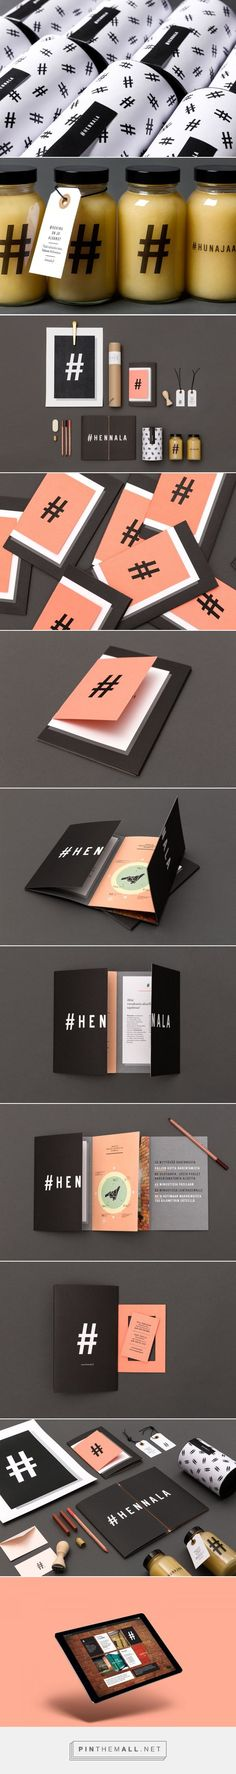 Hennala Visual Identity on Behance